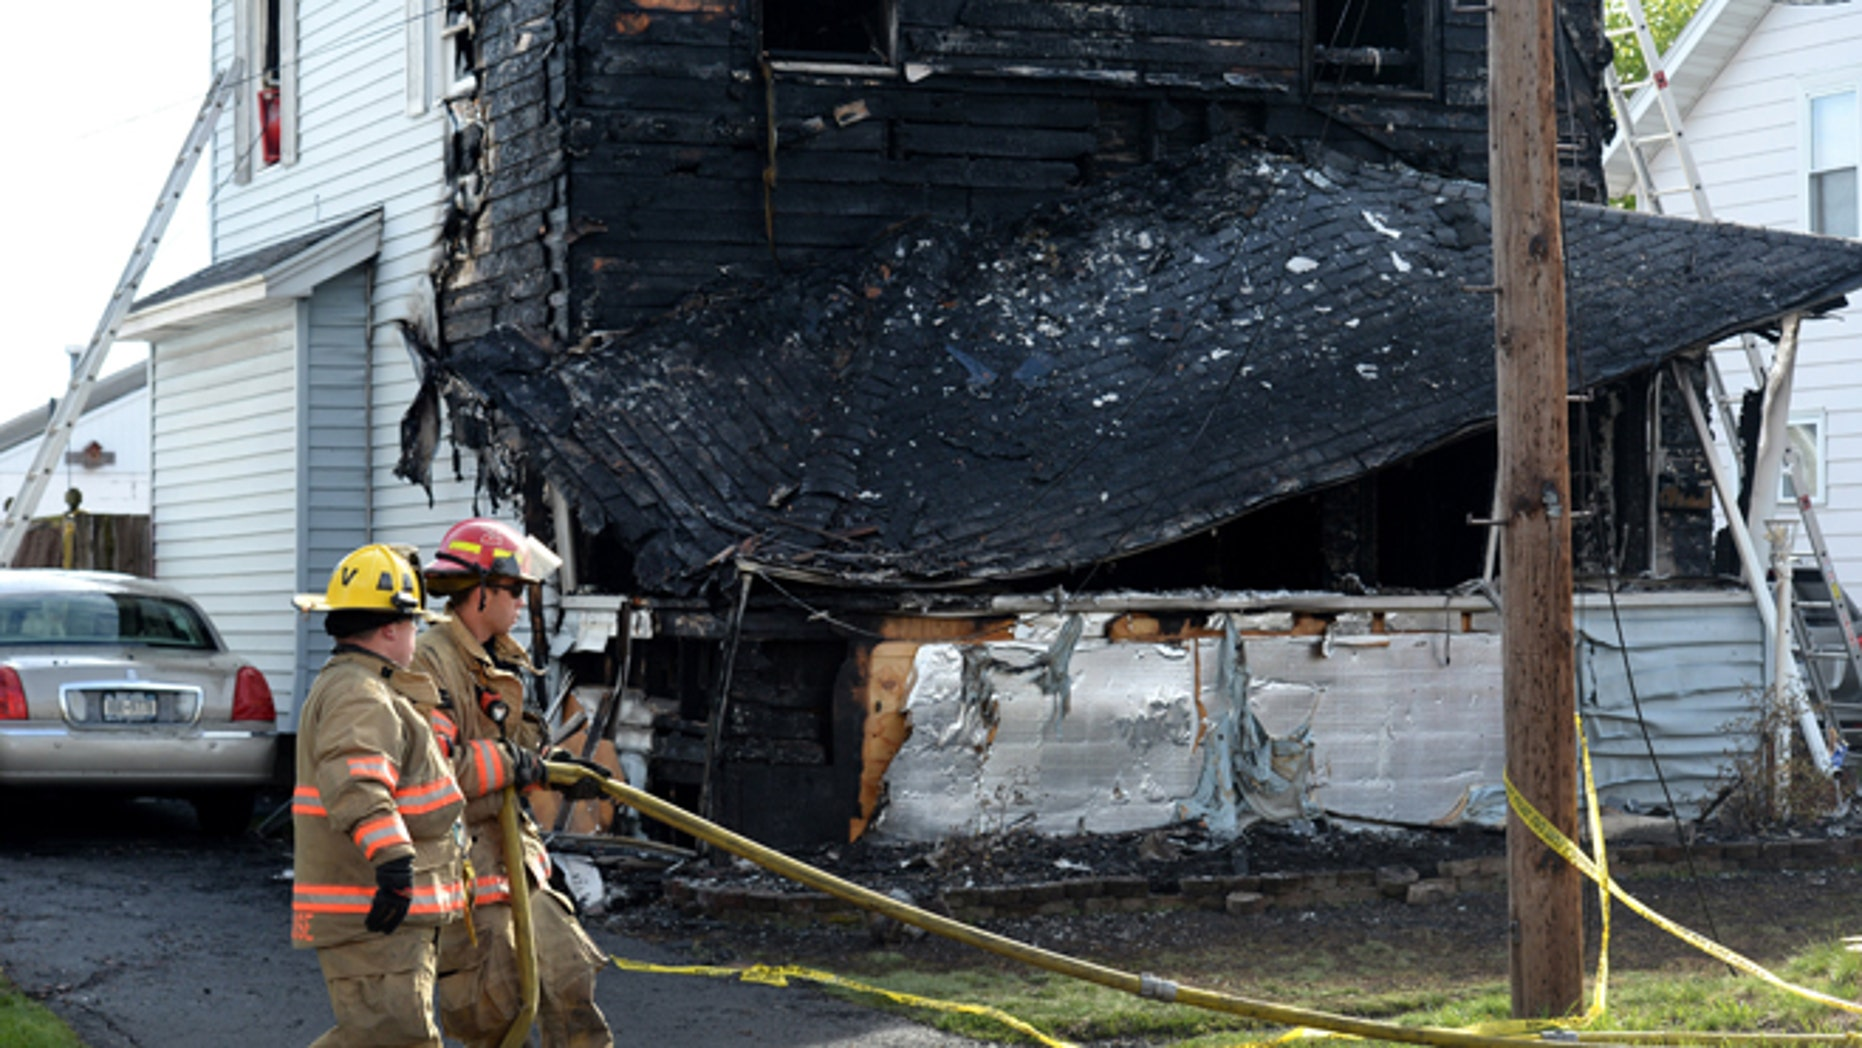 Syracuse firefighters begin to clean up at the scene of a fatal fire, Friday May 6, 2016, in Syracuse, N.Y. The blaze was reported early Friday morning. (Michael Greenlar/The Syracuse Newspapers via AP) NO SALES; MANDATORY CREDIT